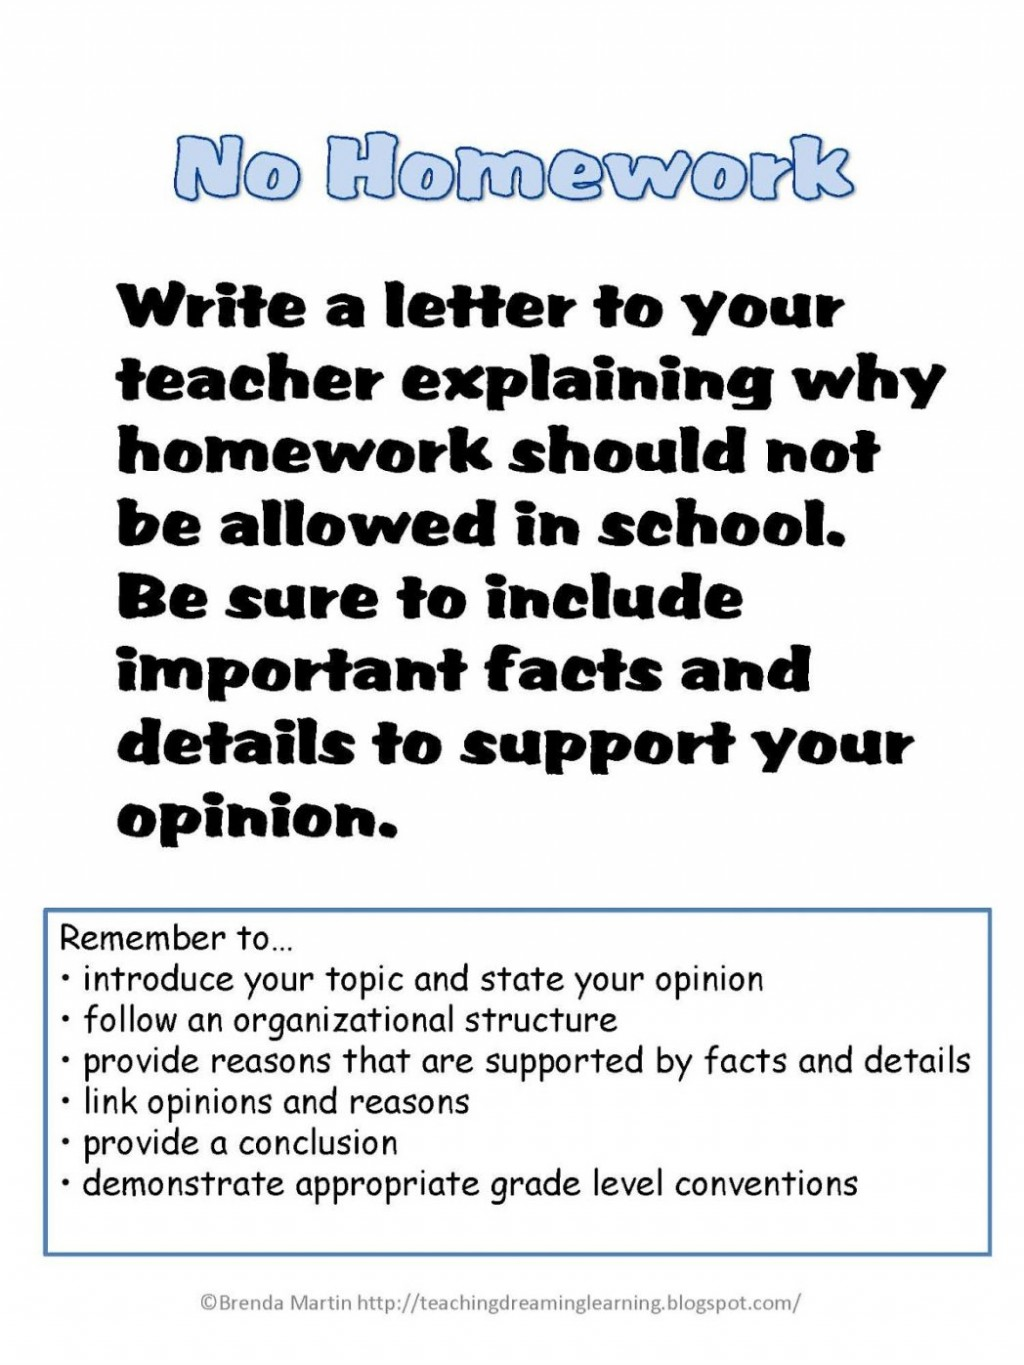 009 Essay Topics For Year Persuasive Sixth Grade Custom Paper Service Ruhomeworkkofd Students Writing Prompts1 Pa Argumentative 6th Graders Speech Prompts 1048x1397 Archaicawful 9 Questions Olds Igcse Large